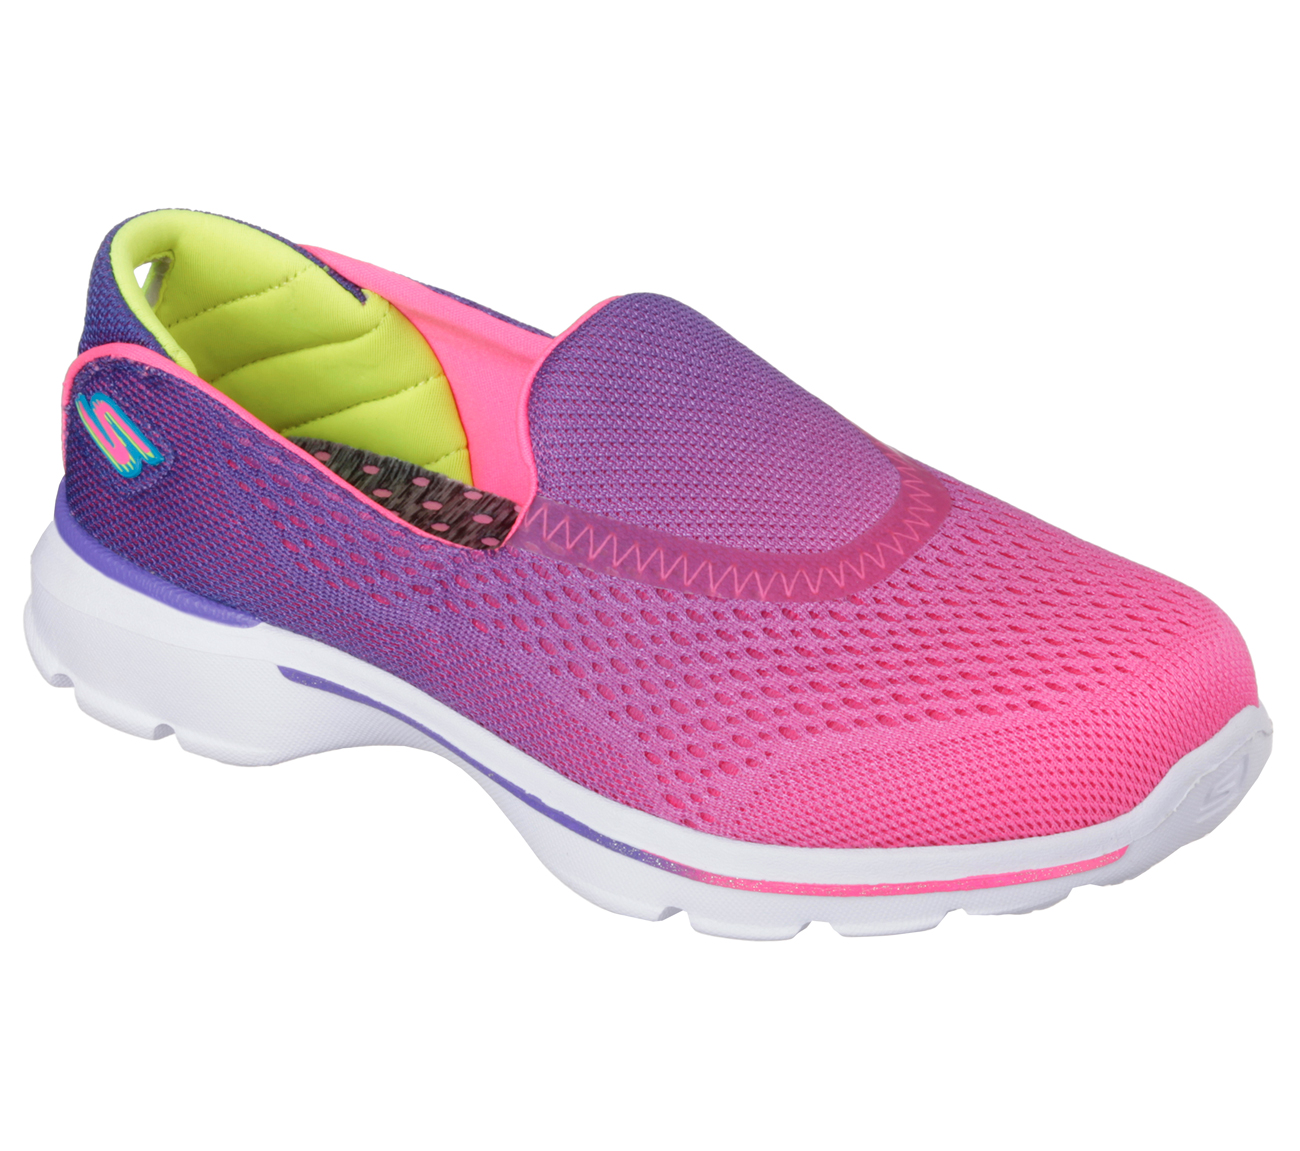 Skechers Girl S Skechers Gowalk 3 Skechers Canada